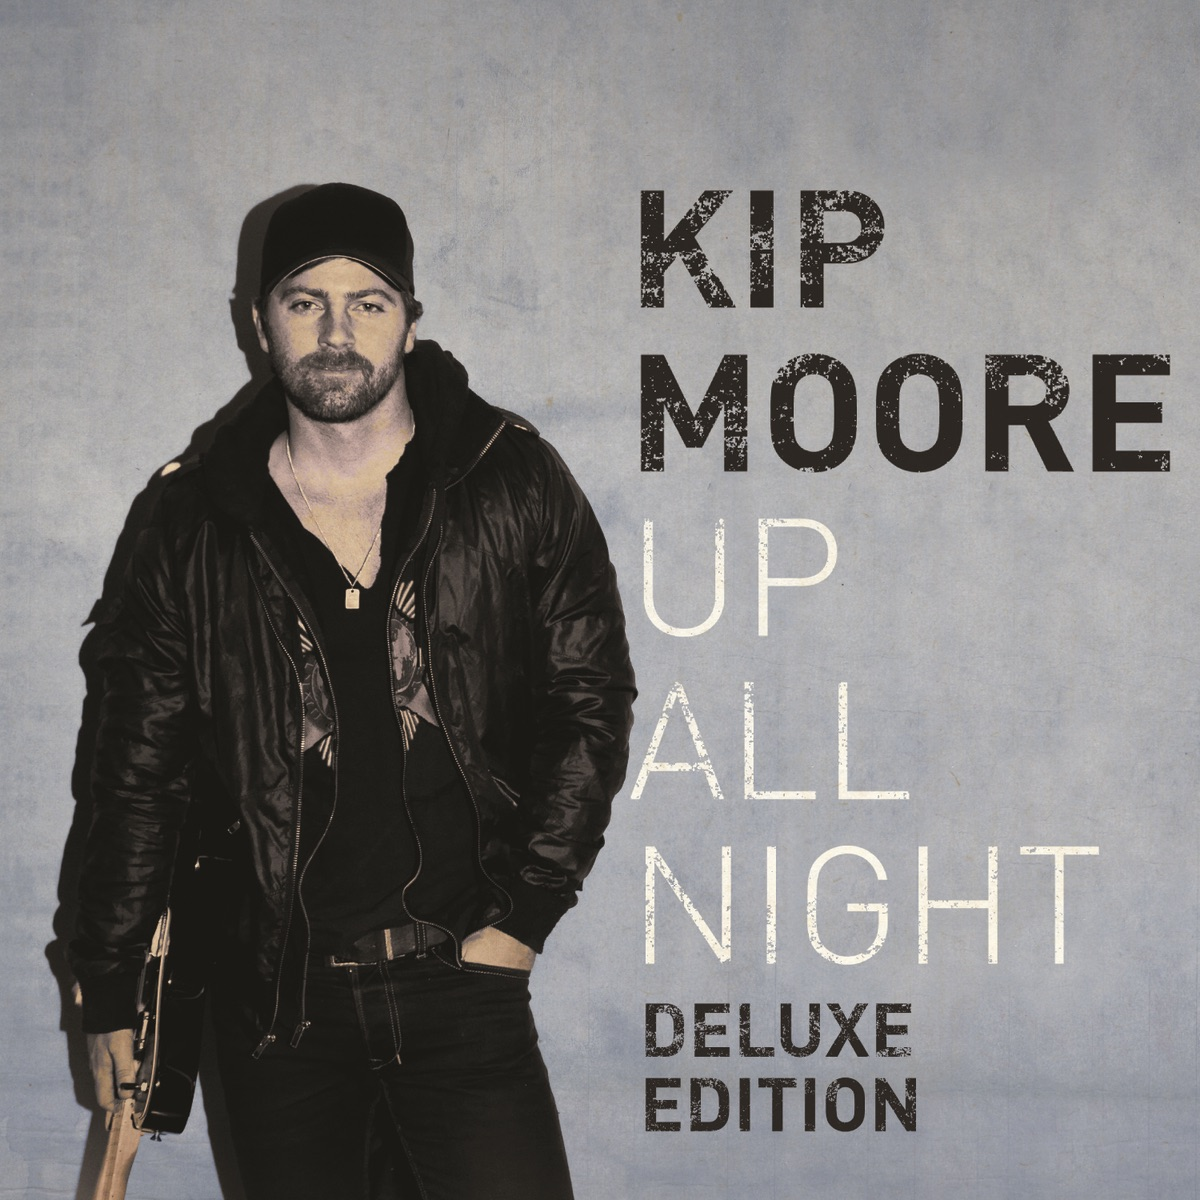 Up All Night Deluxe Edition Kip Moore CD cover